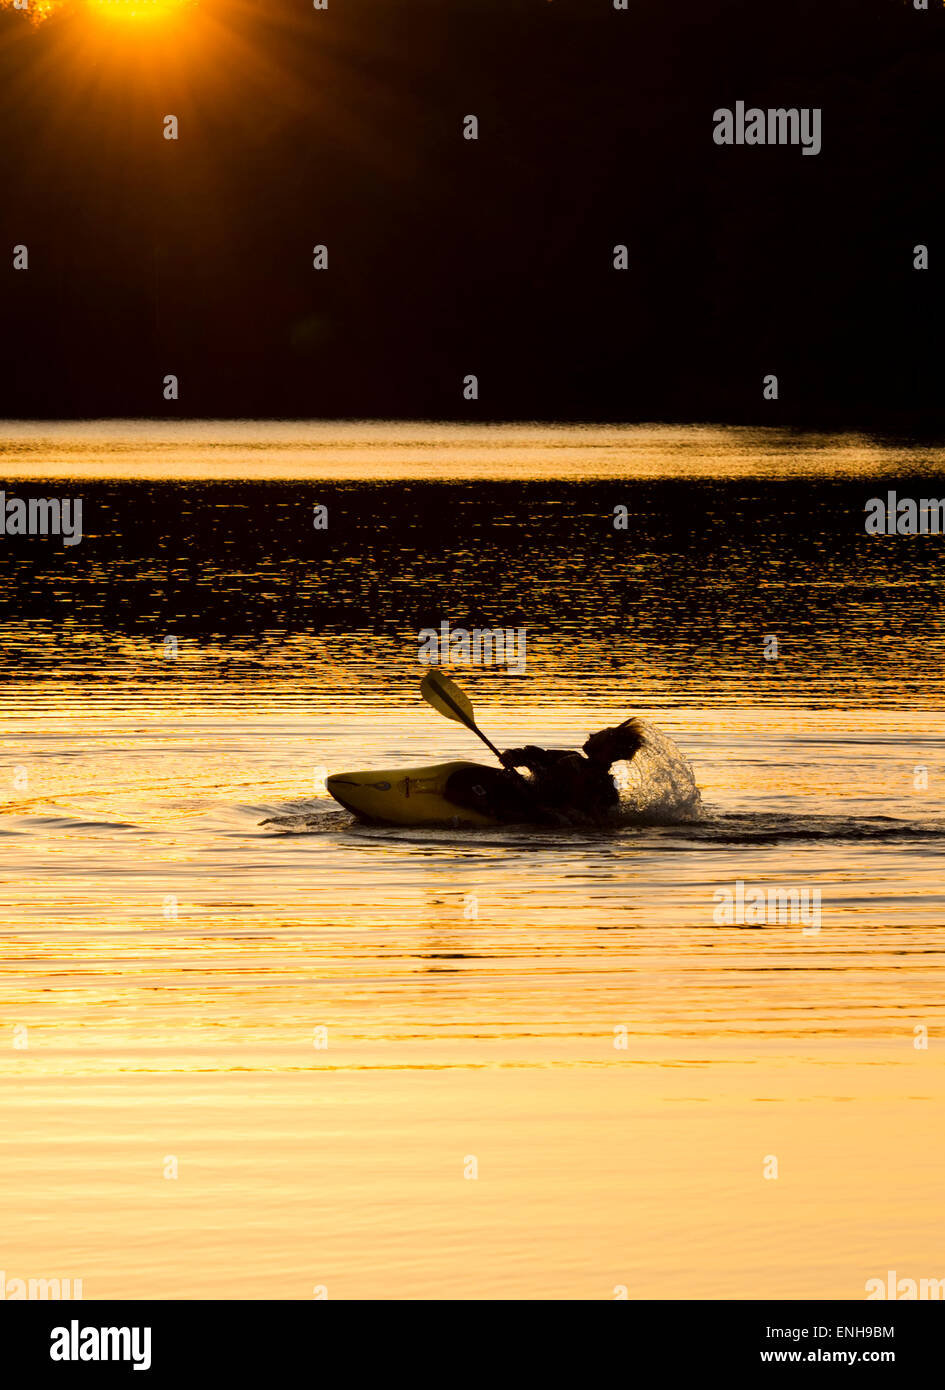 A kayaker silhouetted in the Sunset at 'Reservoir Park' Southern Pines, North Carolina, Moore County NC - Stock Image